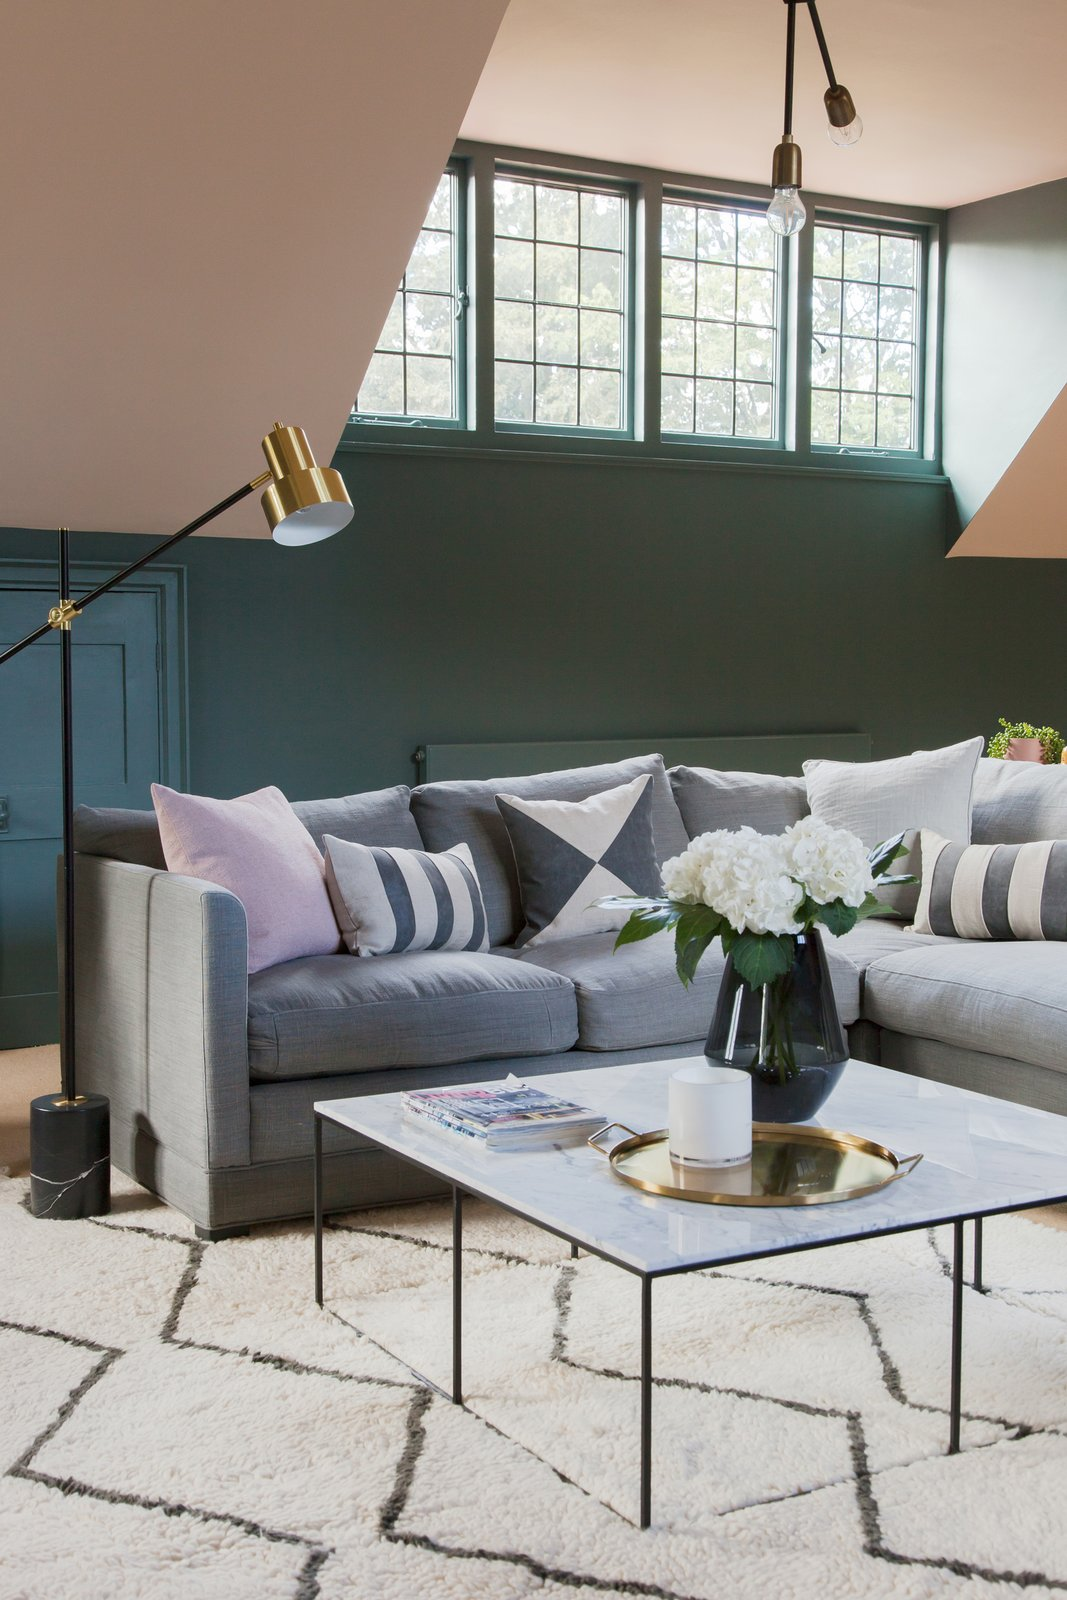 Living Room, Floor Lighting, Coffee Tables, Sofa, Pendant Lighting, and Rug Floor A peek at the inviting sitting area in the attic level.     Photo 6 of 16 in An English Arts and Crafts Home Becomes Delightfully Modernized